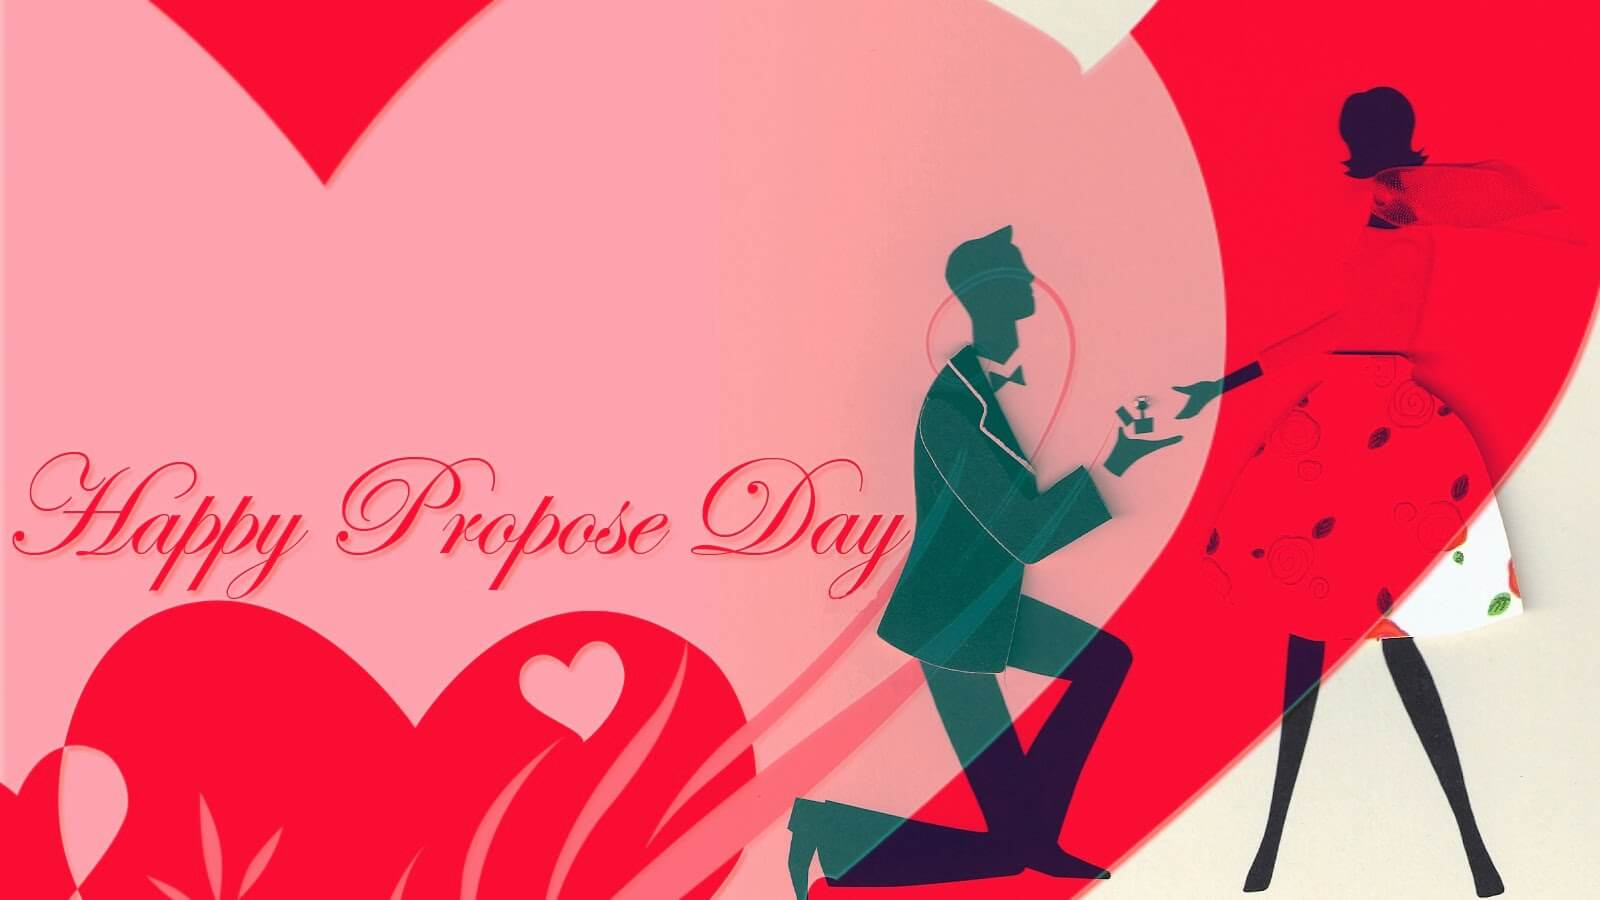 happy propose day couples february 8th modern cute background hd wallpaper